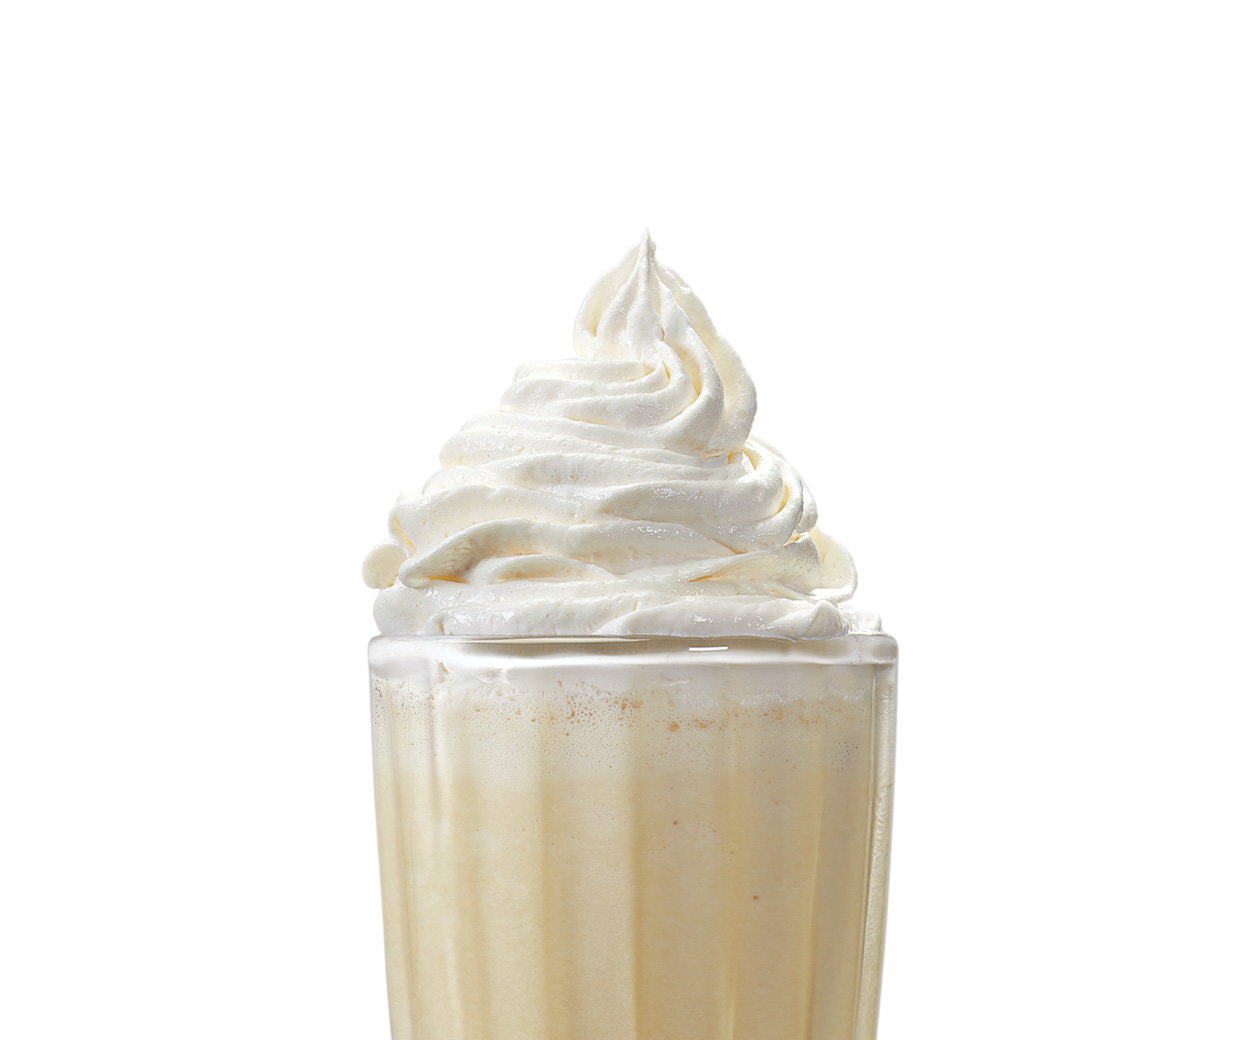 Stabilized Whipped Cream – a whipped cream made thicker with the addition of cream cheese and confectioners' sugar. Use it as a replacement for Cool Whip!